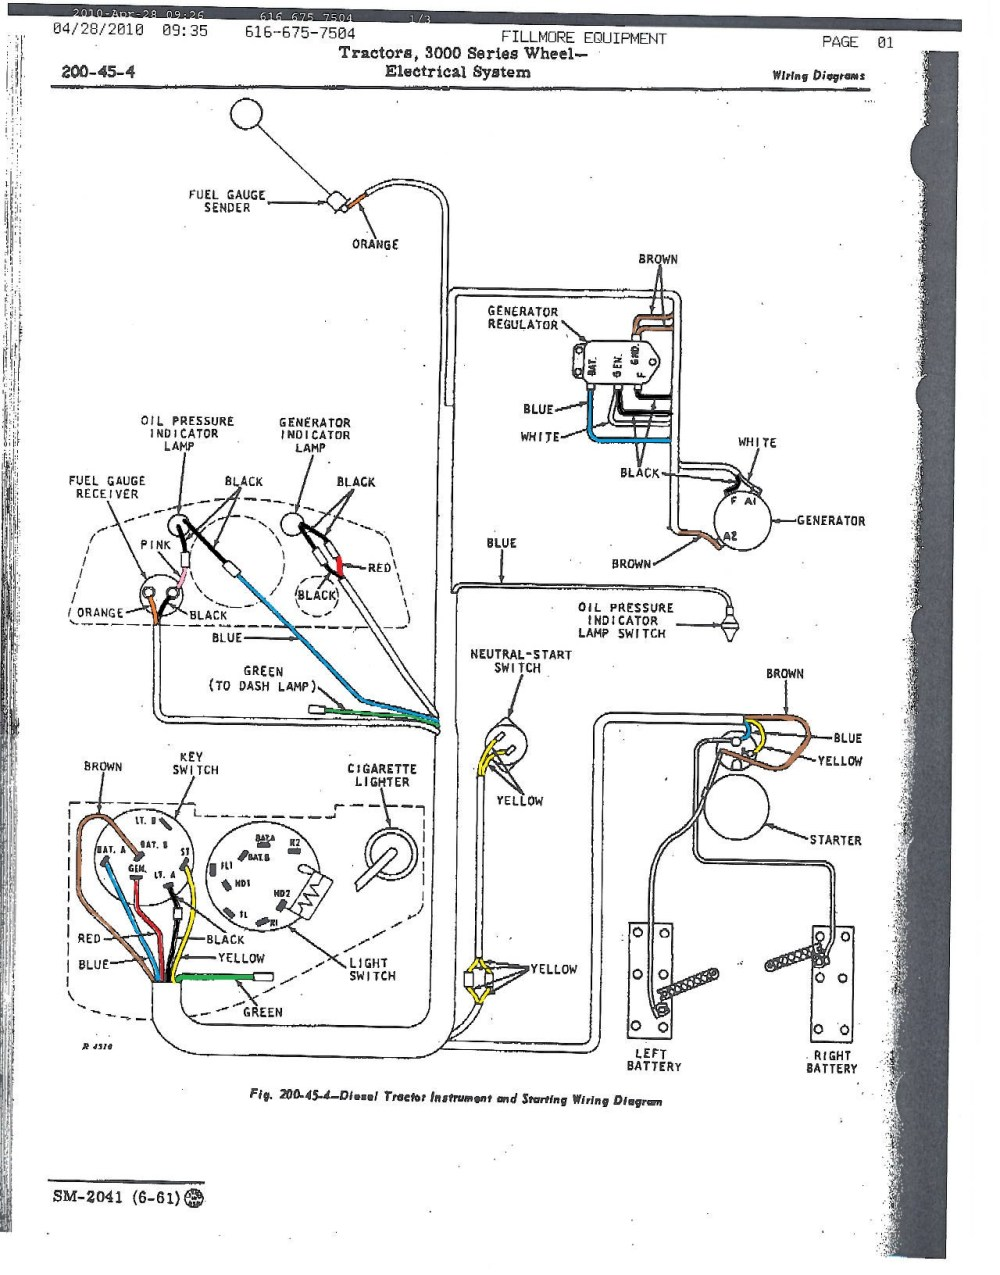 medium resolution of wiring diagram 3010 john deere tractor